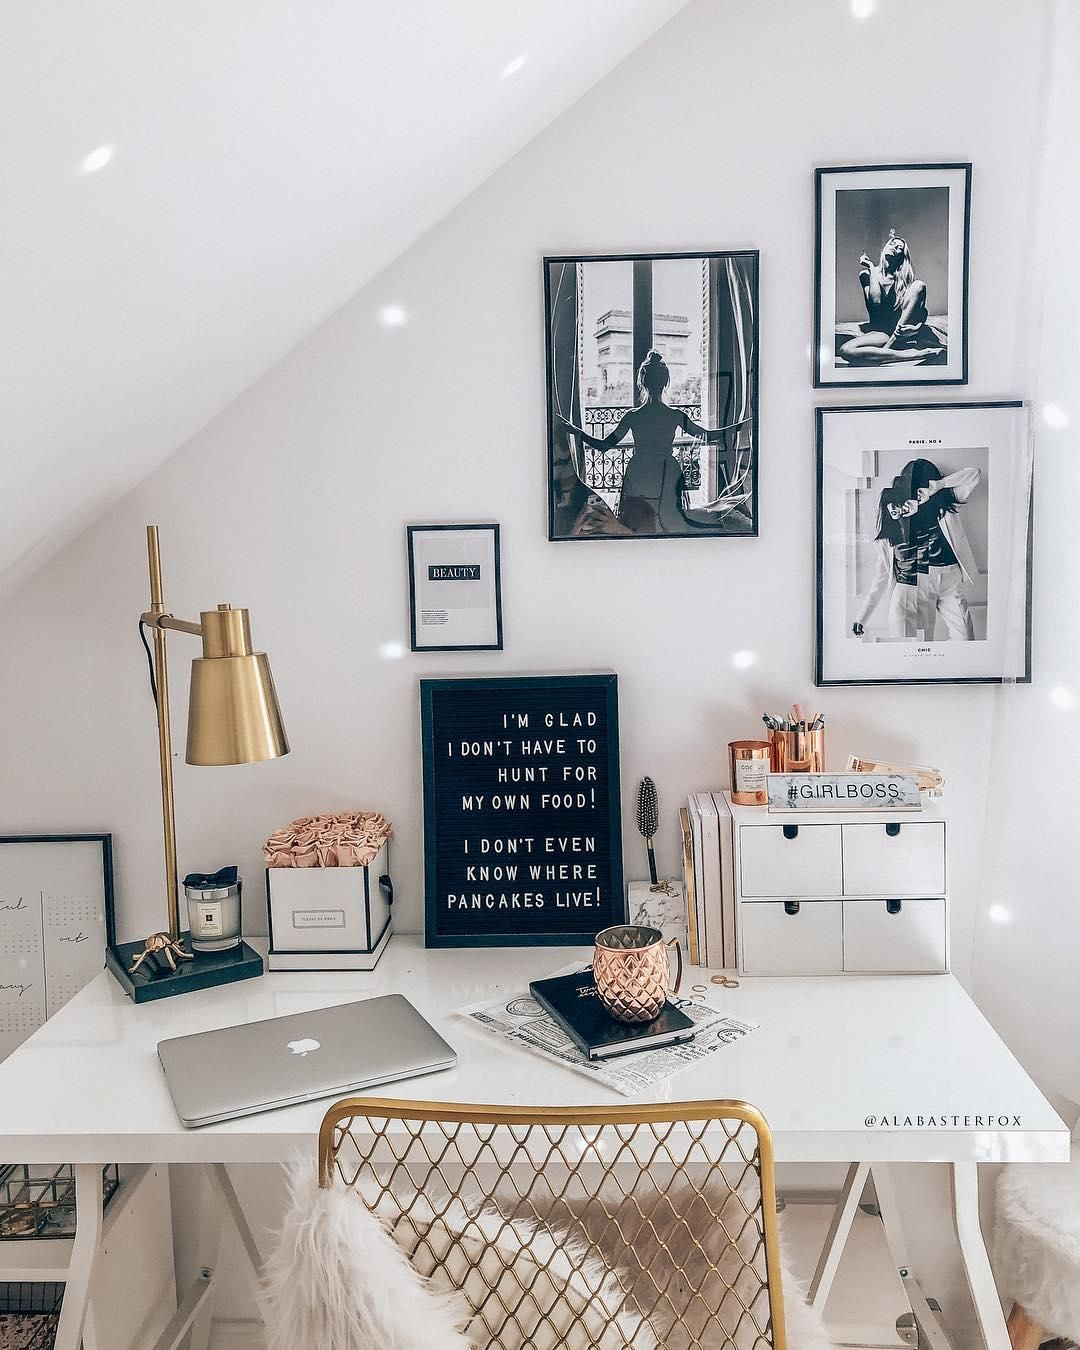 Home Office Arbeitsplatz Girlboss Home Office Mit Femininer Note Wer Regiert Die